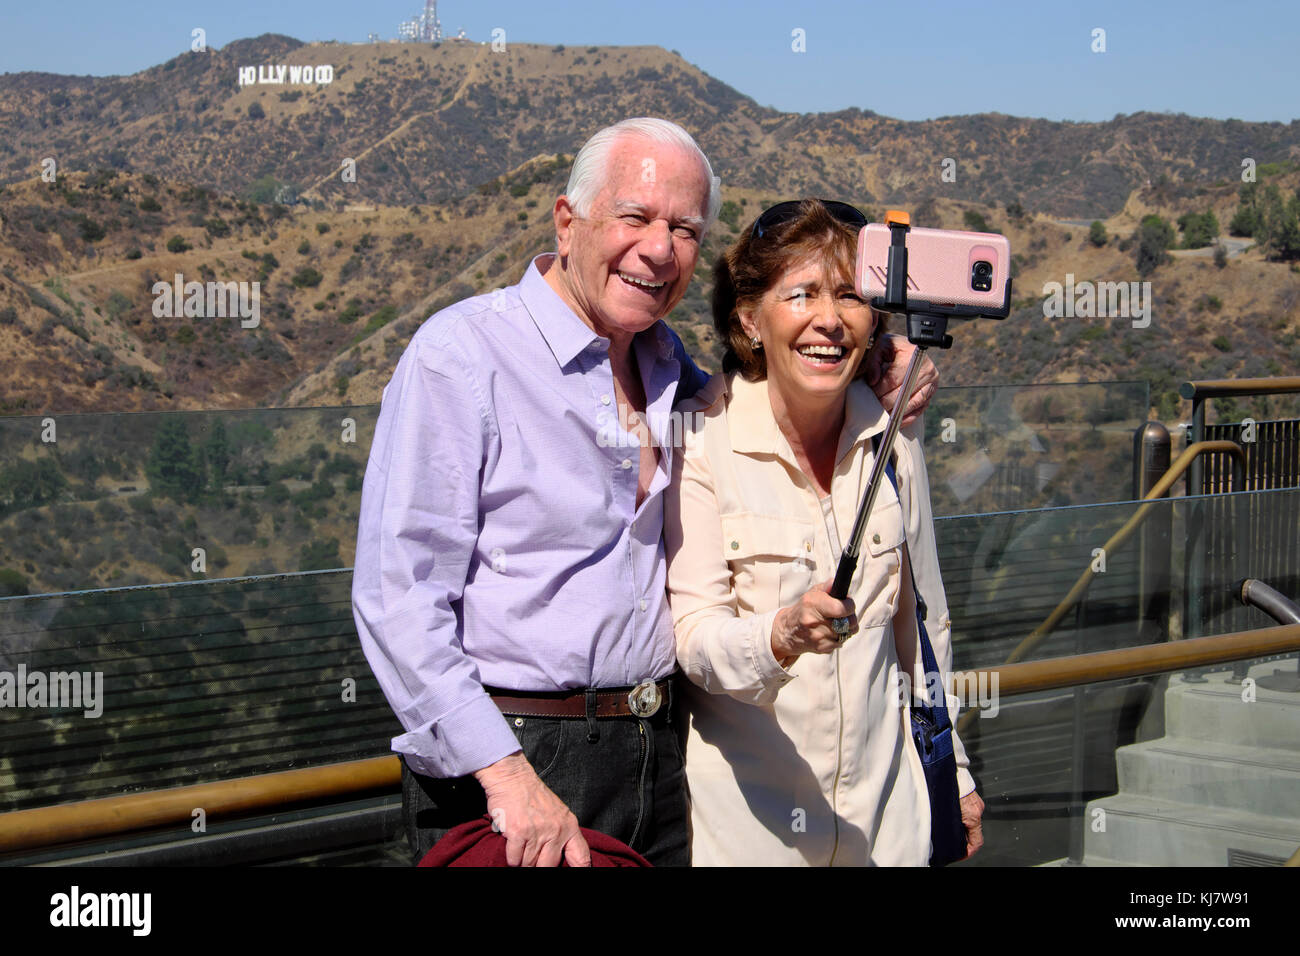 Senior couple with selfie stick taking photo with cell phone camera & Hollywood sign at Griffith Park Observatory - Stock Image